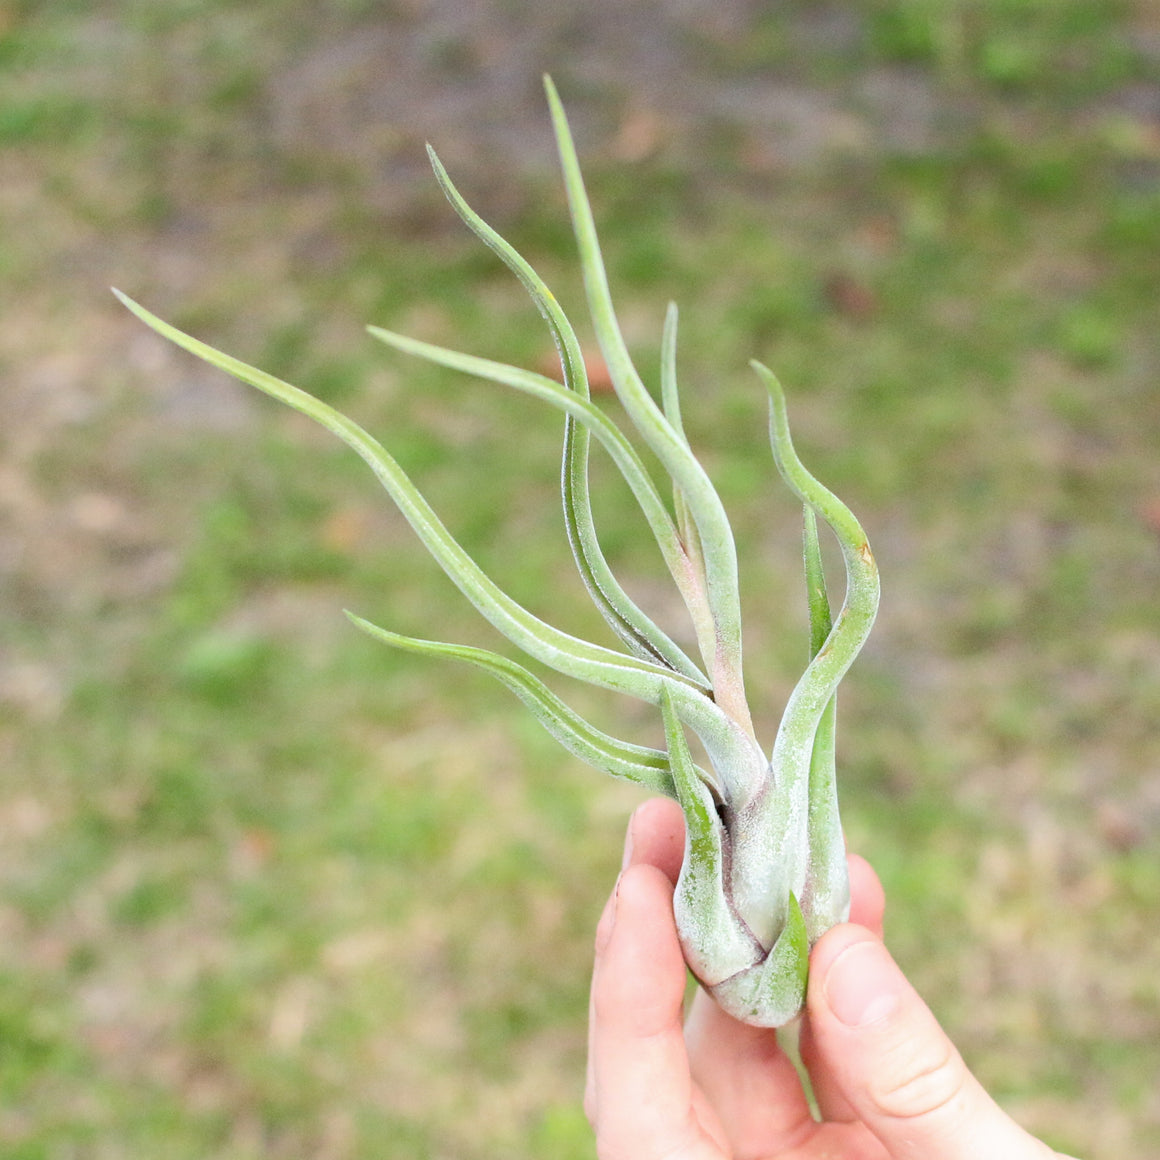 SALE - Caput Medusae - Set of 10 or 20 Air Plants - 70% Off